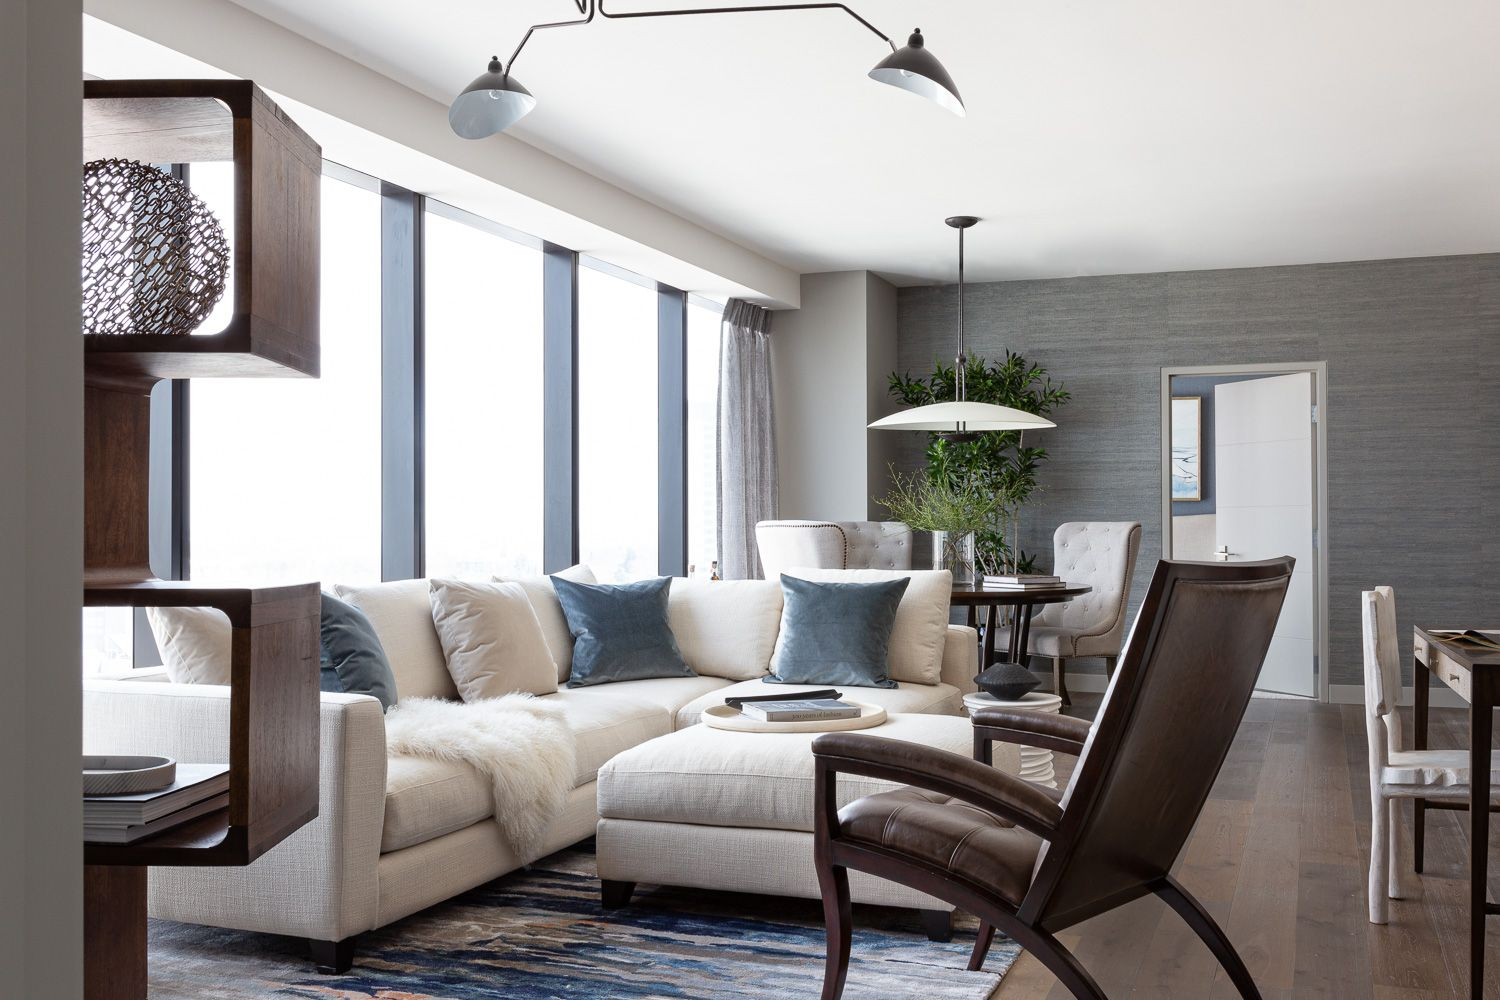 The Sawyer Design Alchemy With Images Home Decor Interior